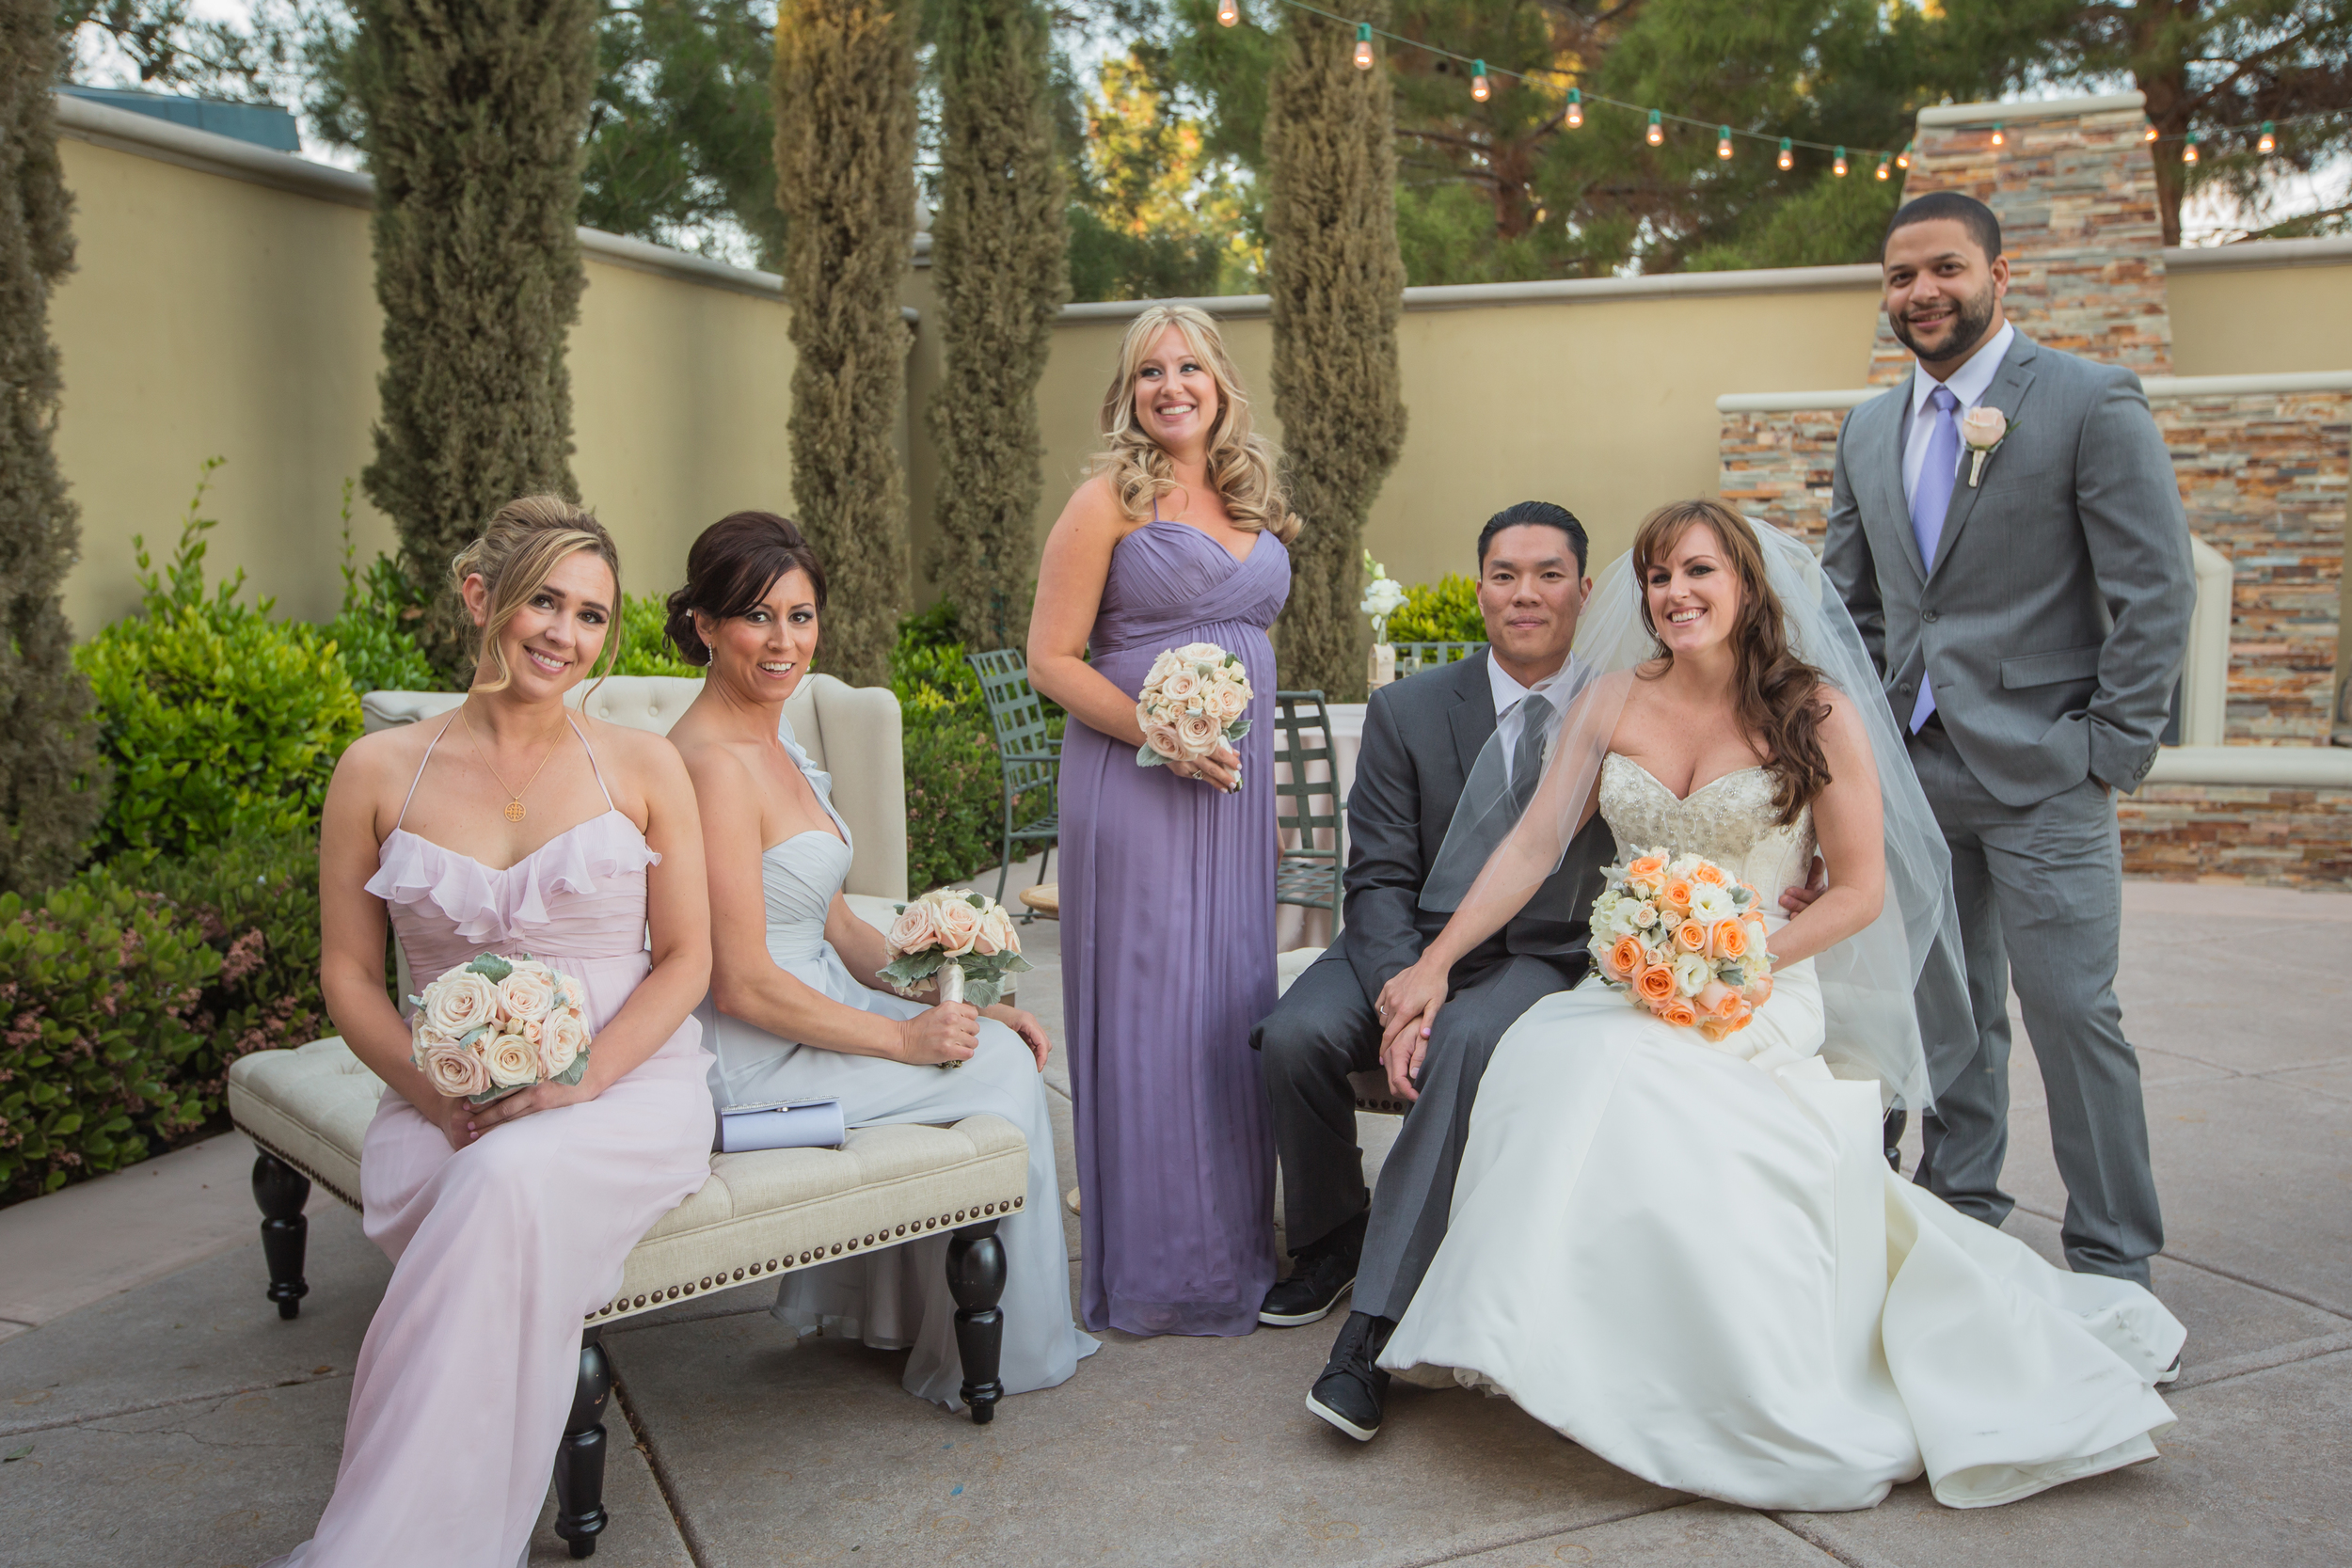 The Bridal Party.  Bridesmaids in shades of sorbet by Bella Bridesmaids.  The Groom and his Best Man in Vera Wang.     Las Vegas Wedding at   Siena Golf Club    |  Photography by   Ella Gagiano    | Floral and Decor by  Naakiti Floral   |  Las Wedding Planner   Andrea Eppolito